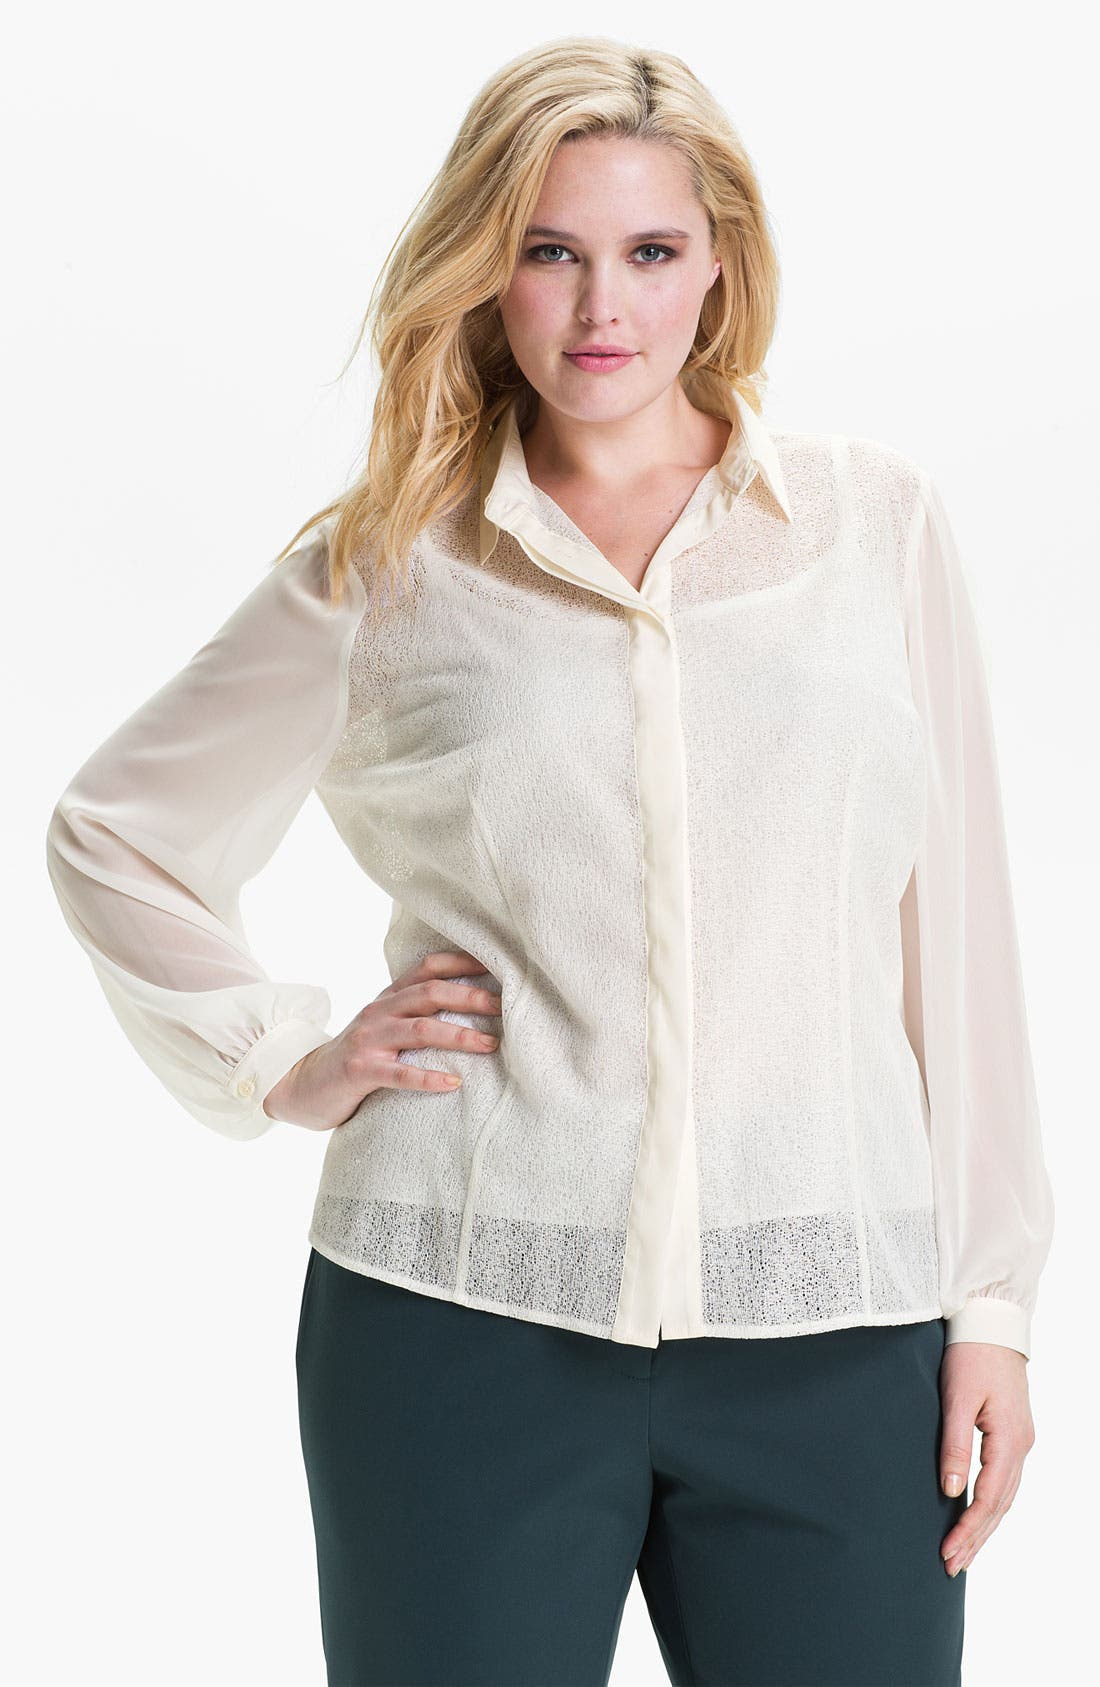 Alternate Image 1 Selected - Kenneth Cole New York 'Sandy' Mixed Media Blouse (Plus)